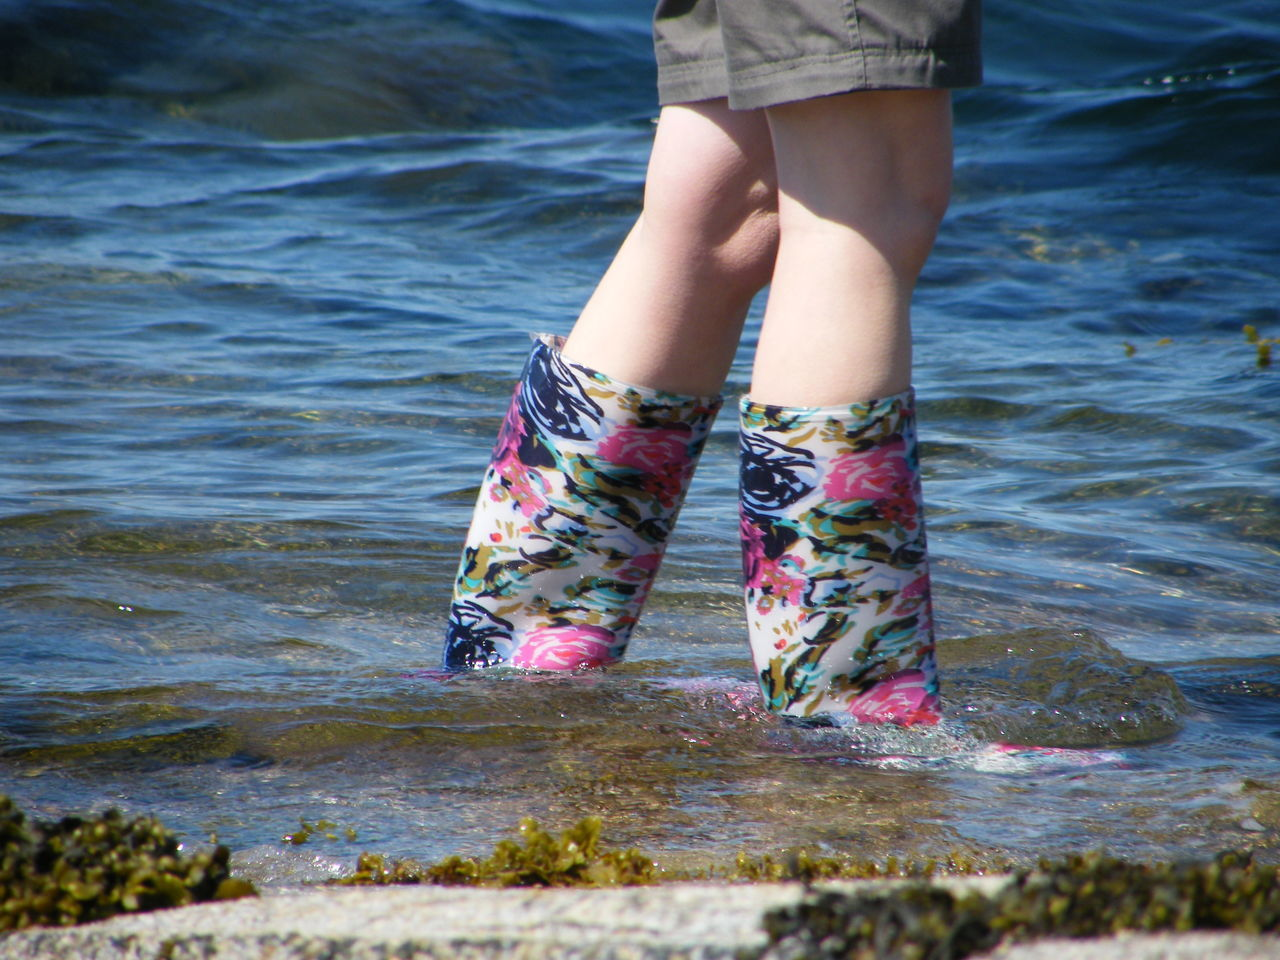 Adult Adults Only Close-up Day Human Body Part Human Leg Leisure Activity Lifestyles Low Section Nature One Person One Woman Only Only Women Outdoors Paddling People Real People Sea Shore Standing Water Wellies  Wellington Boots Women